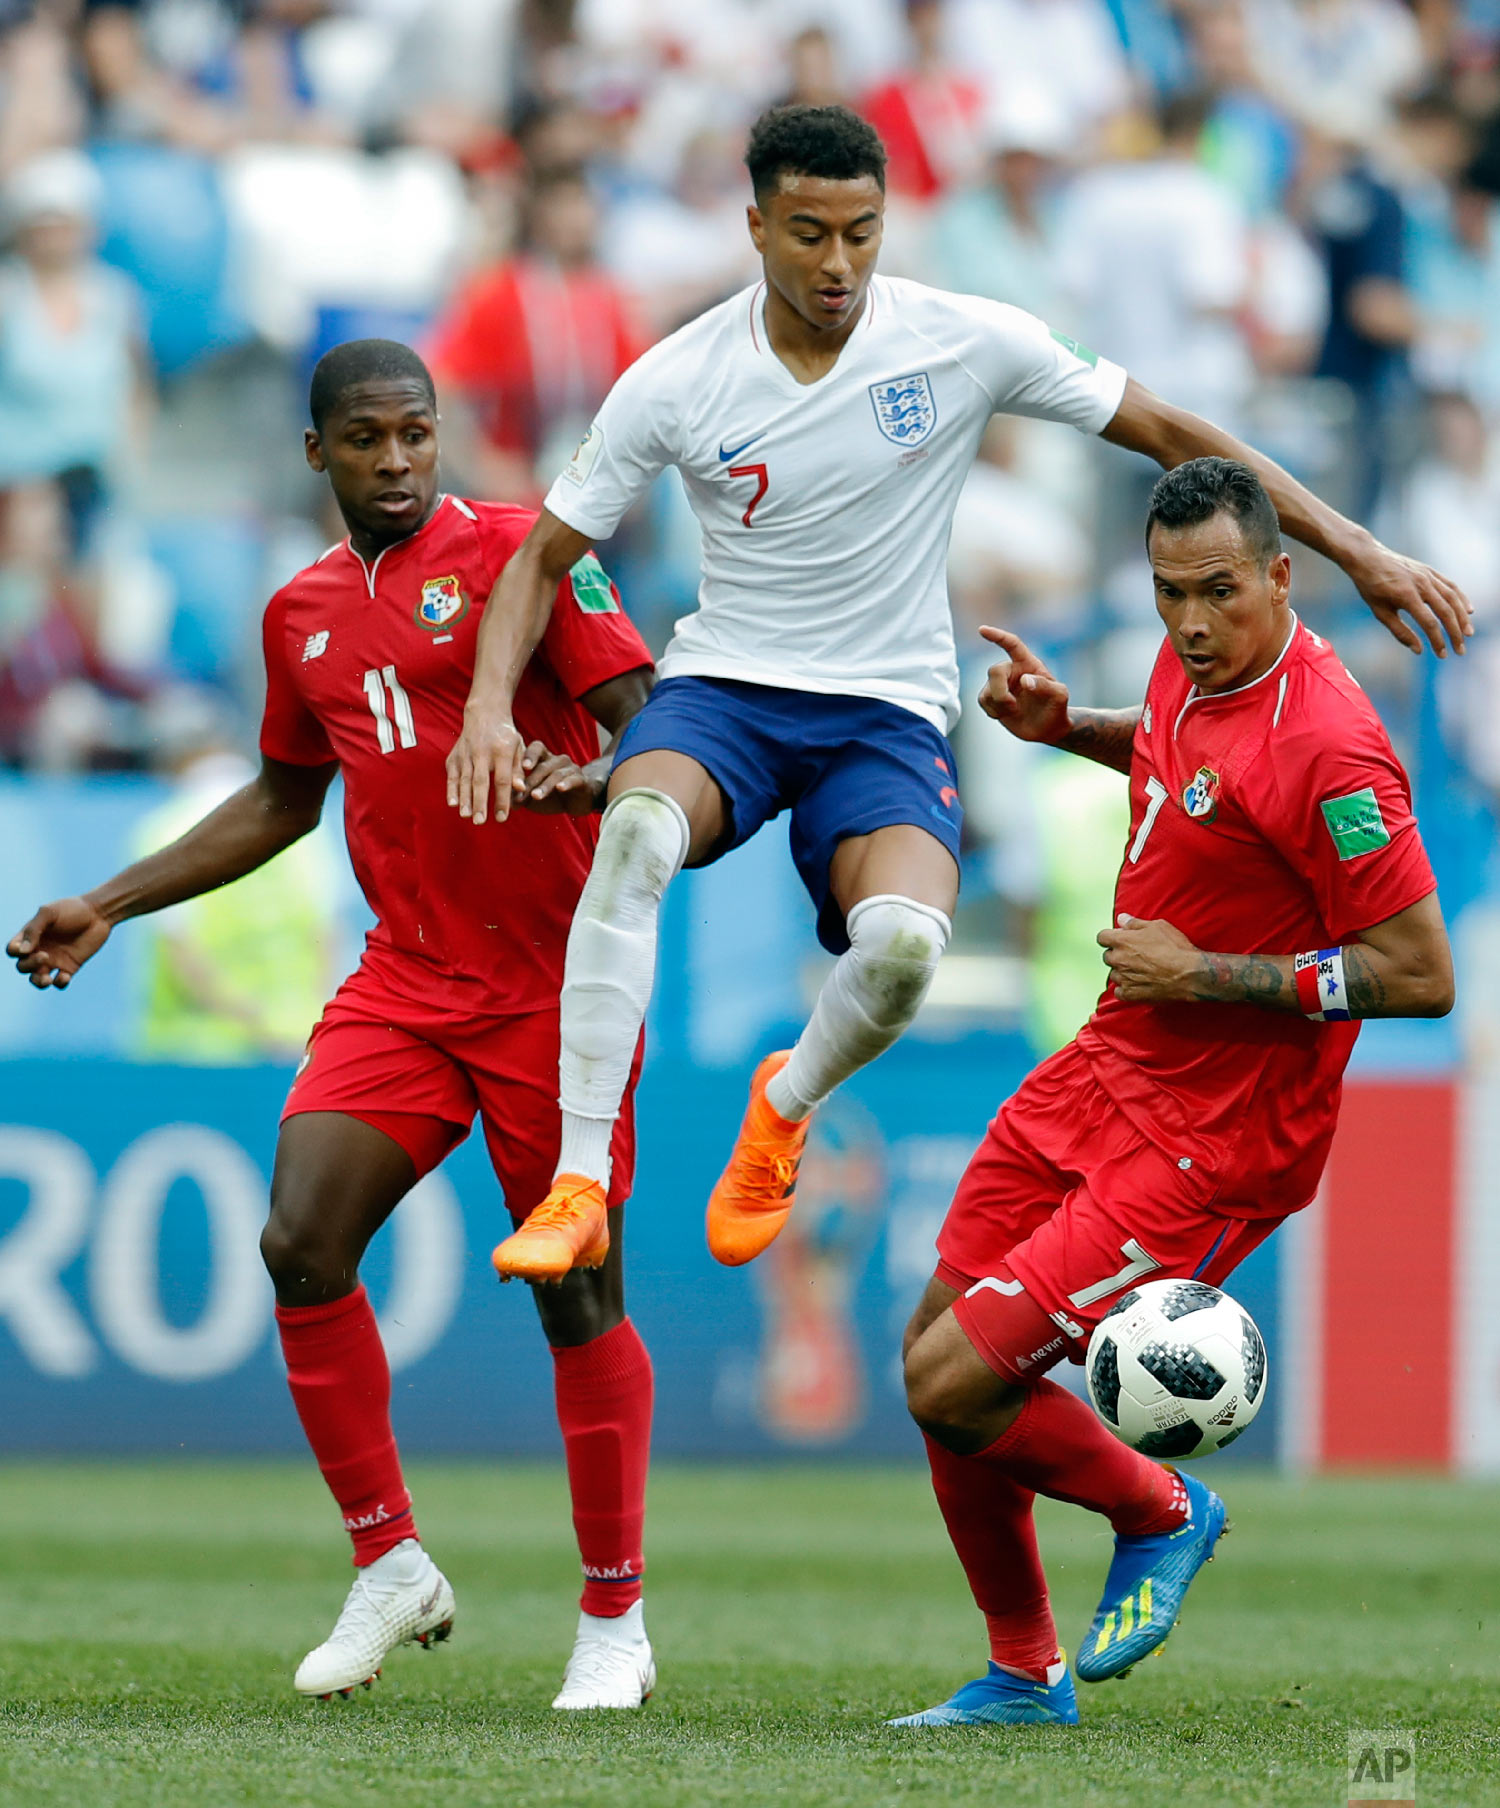 England's Jesse Lingard makes his way between Panama's Armando Cooper, left, and Panama's Blas Perez during the group G match between England and Panama at the 2018 soccer World Cup at the Nizhny Novgorod Stadium in Nizhny Novgorod , Russia, Sunday, June 24, 2018. (AP Photo/Antonio Calanni)